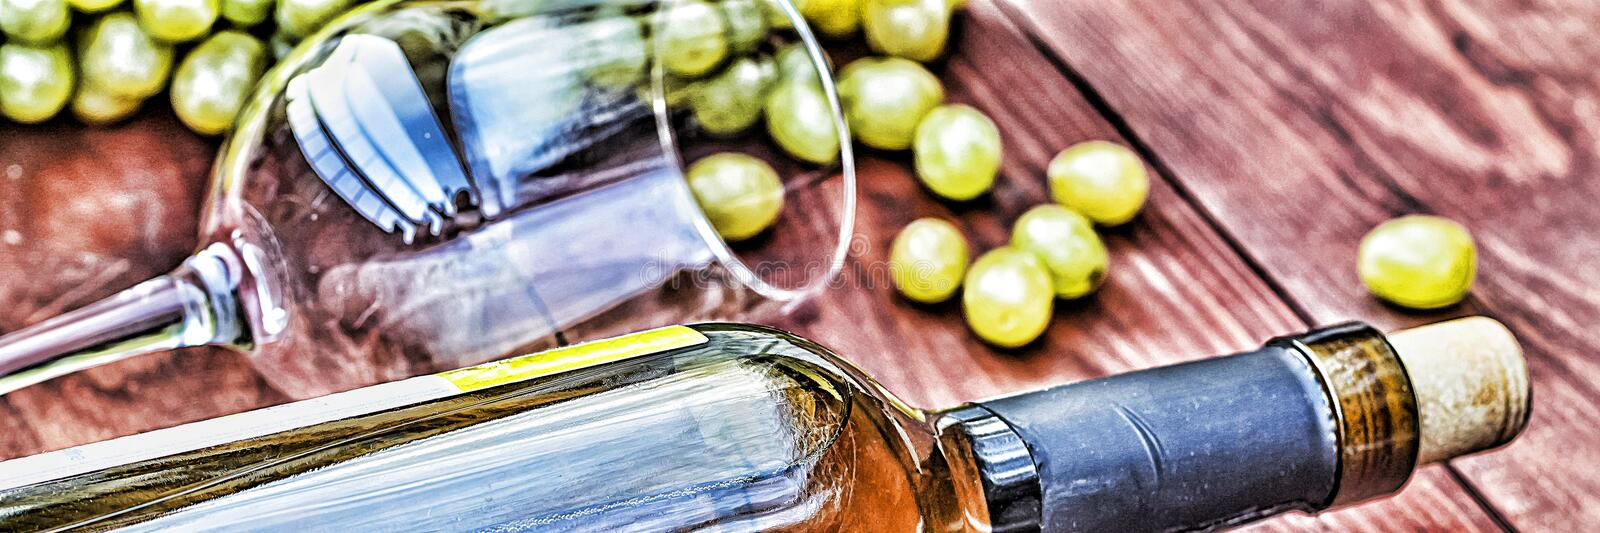 Bottle of white wine. Thanksgiving. royalty free stock images